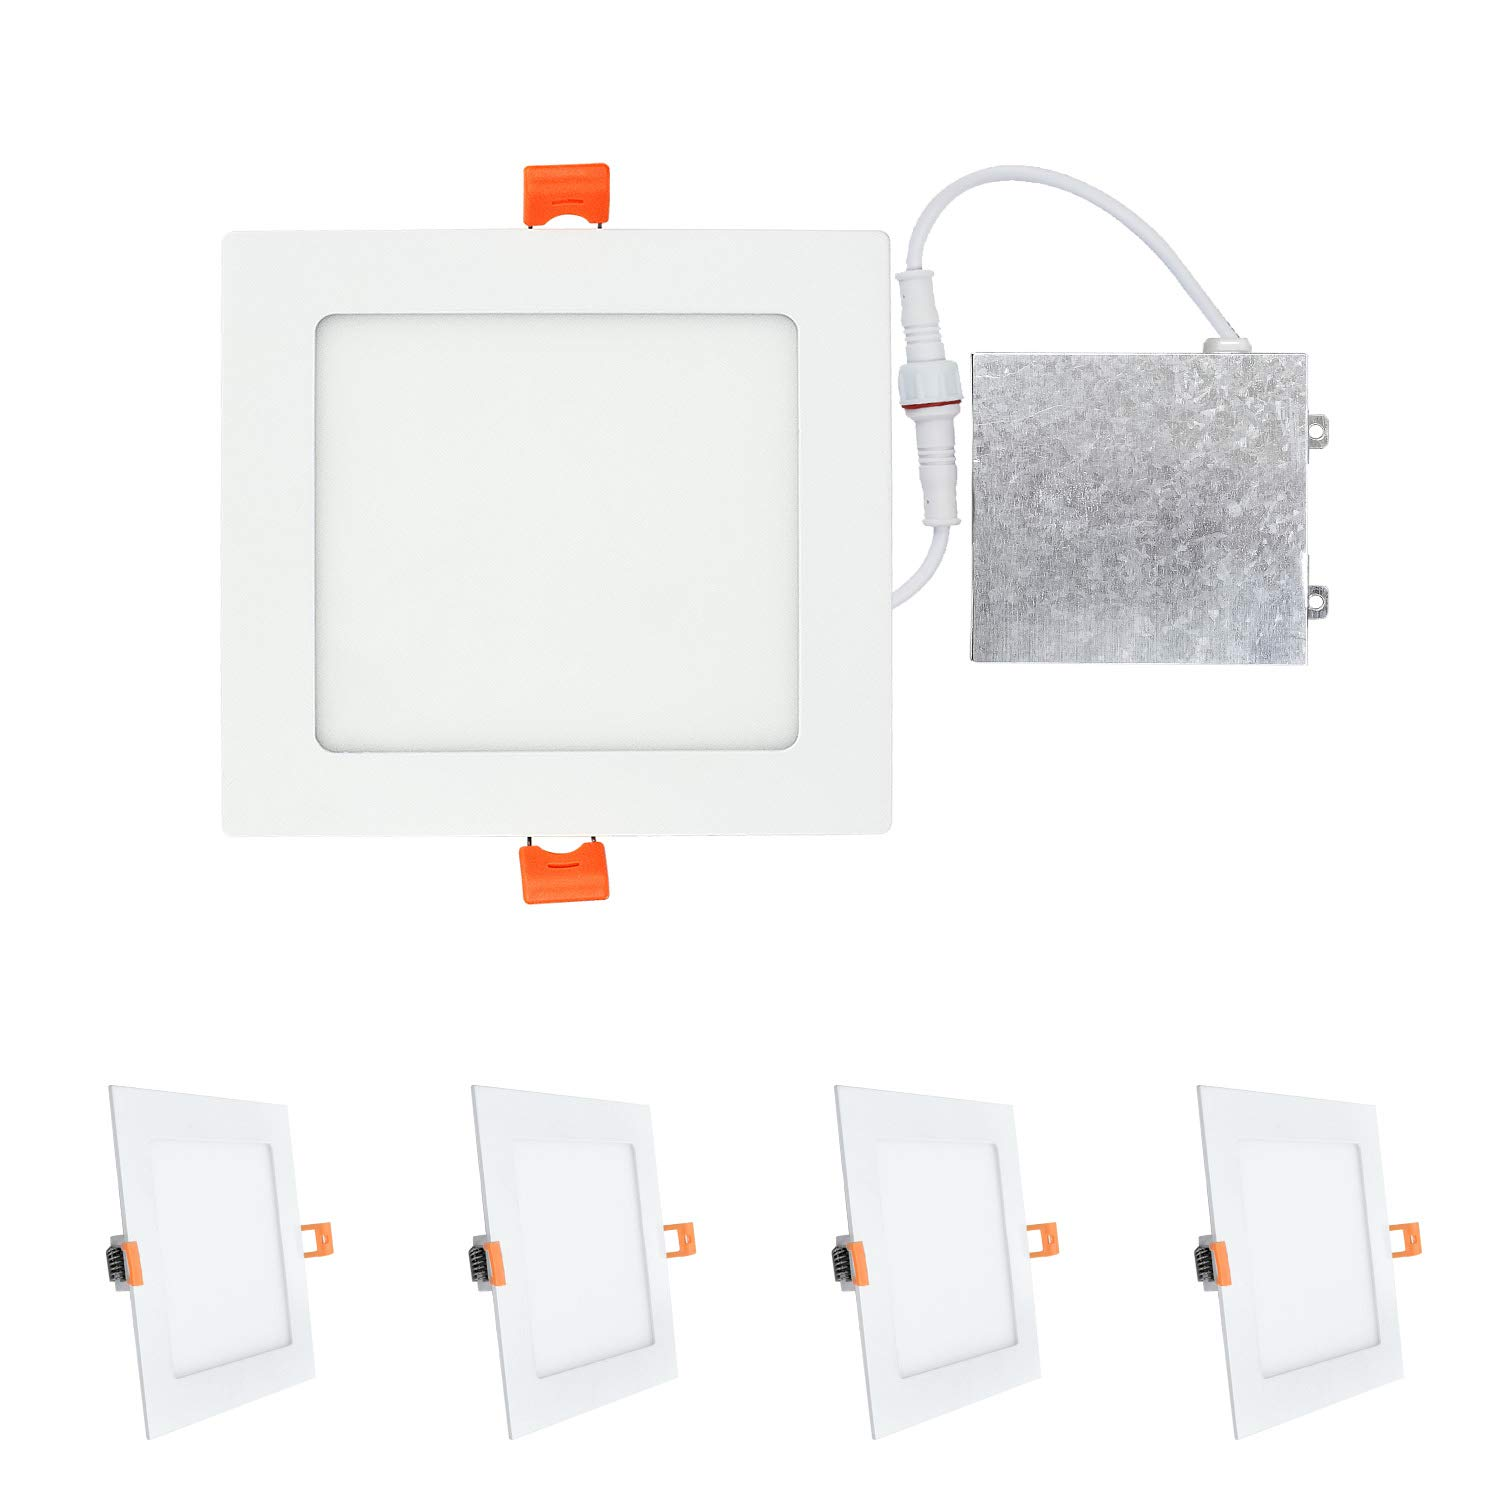 OSTWIN (4 Pack) 6 inch 12W (60 Watt Repl.) IC Rated LED Recessed Low Profile Slim Square Panel Light with Junction Box, Dimmable, 5000K Daylight 840 Lm. No Can Needed ETL & Energy Star Listed